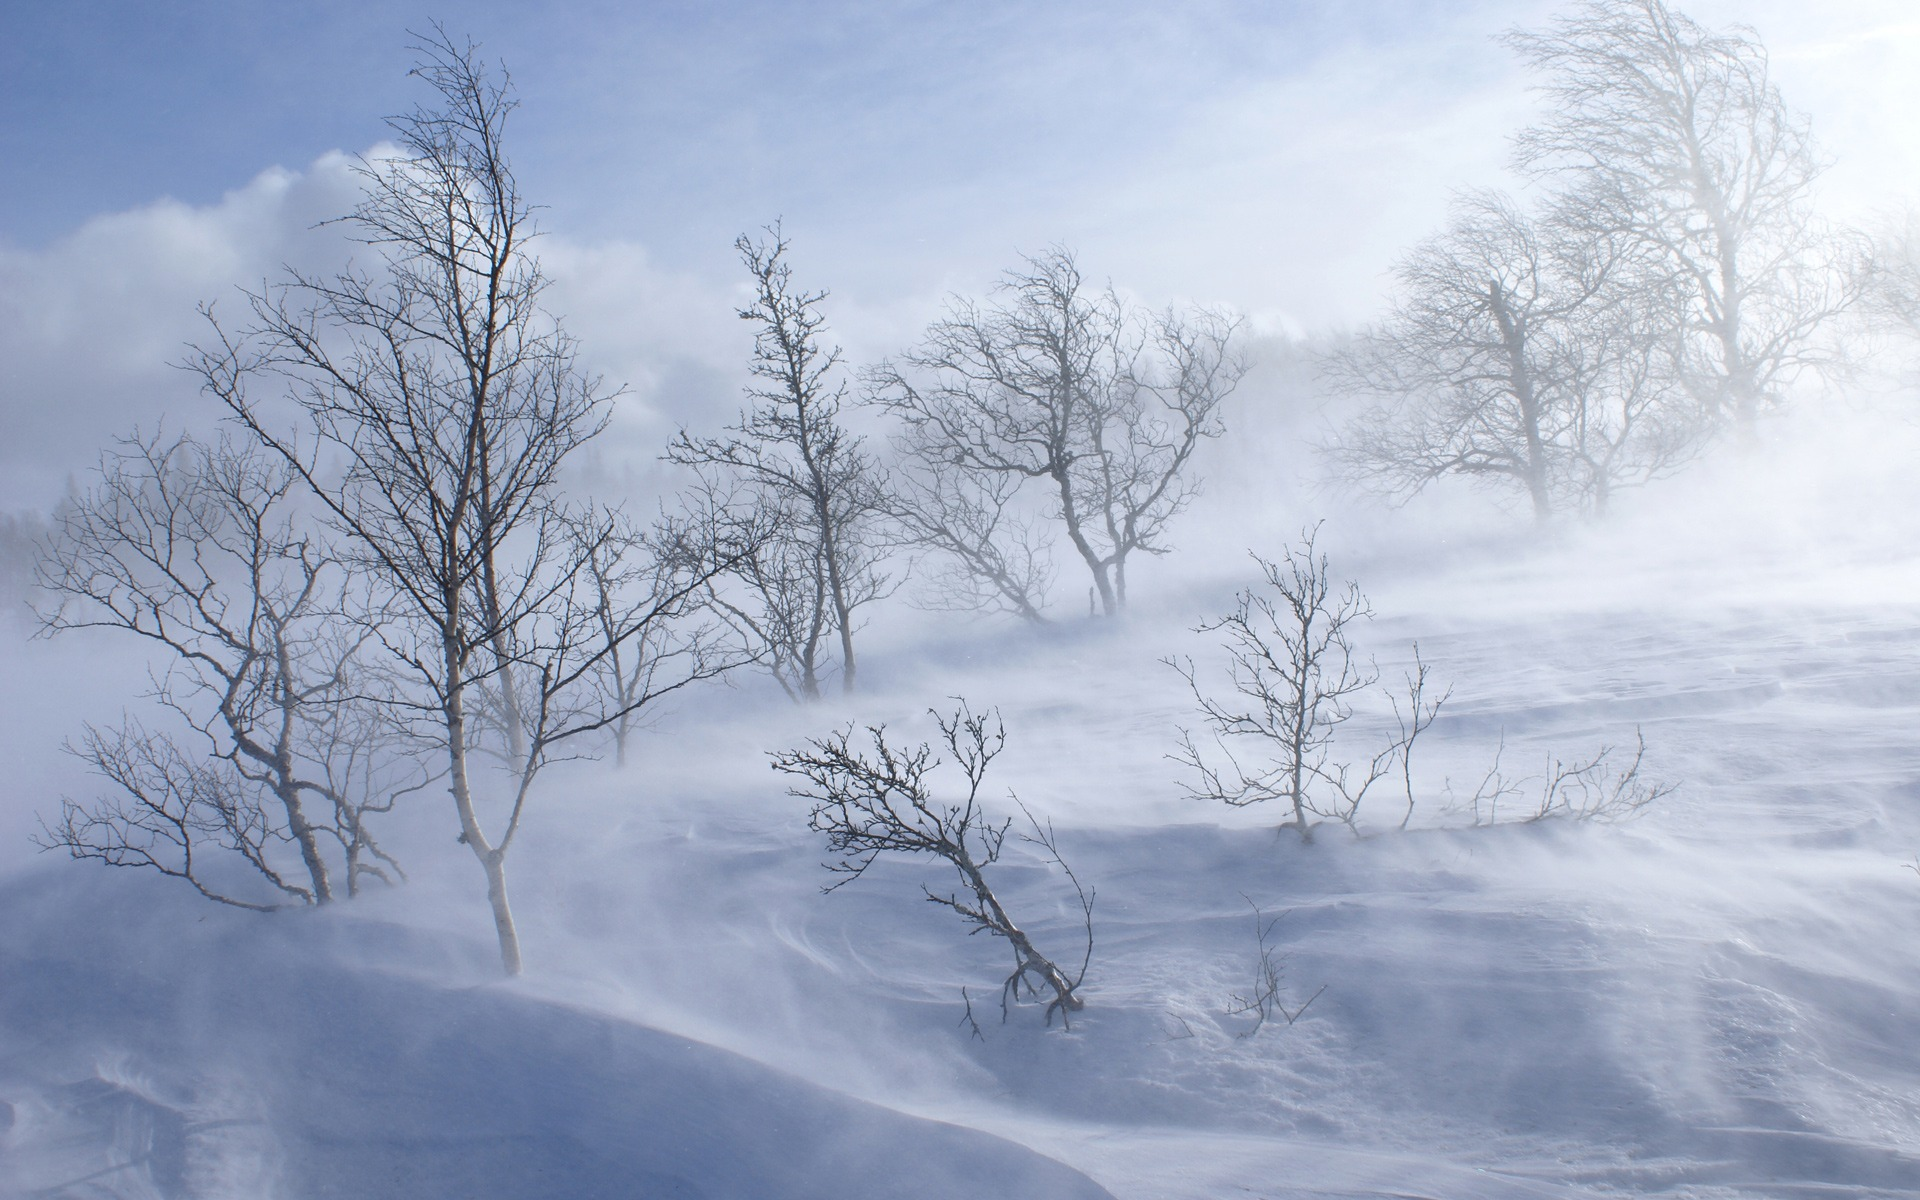 Winter_wallpapers_Snowstorm_019273_